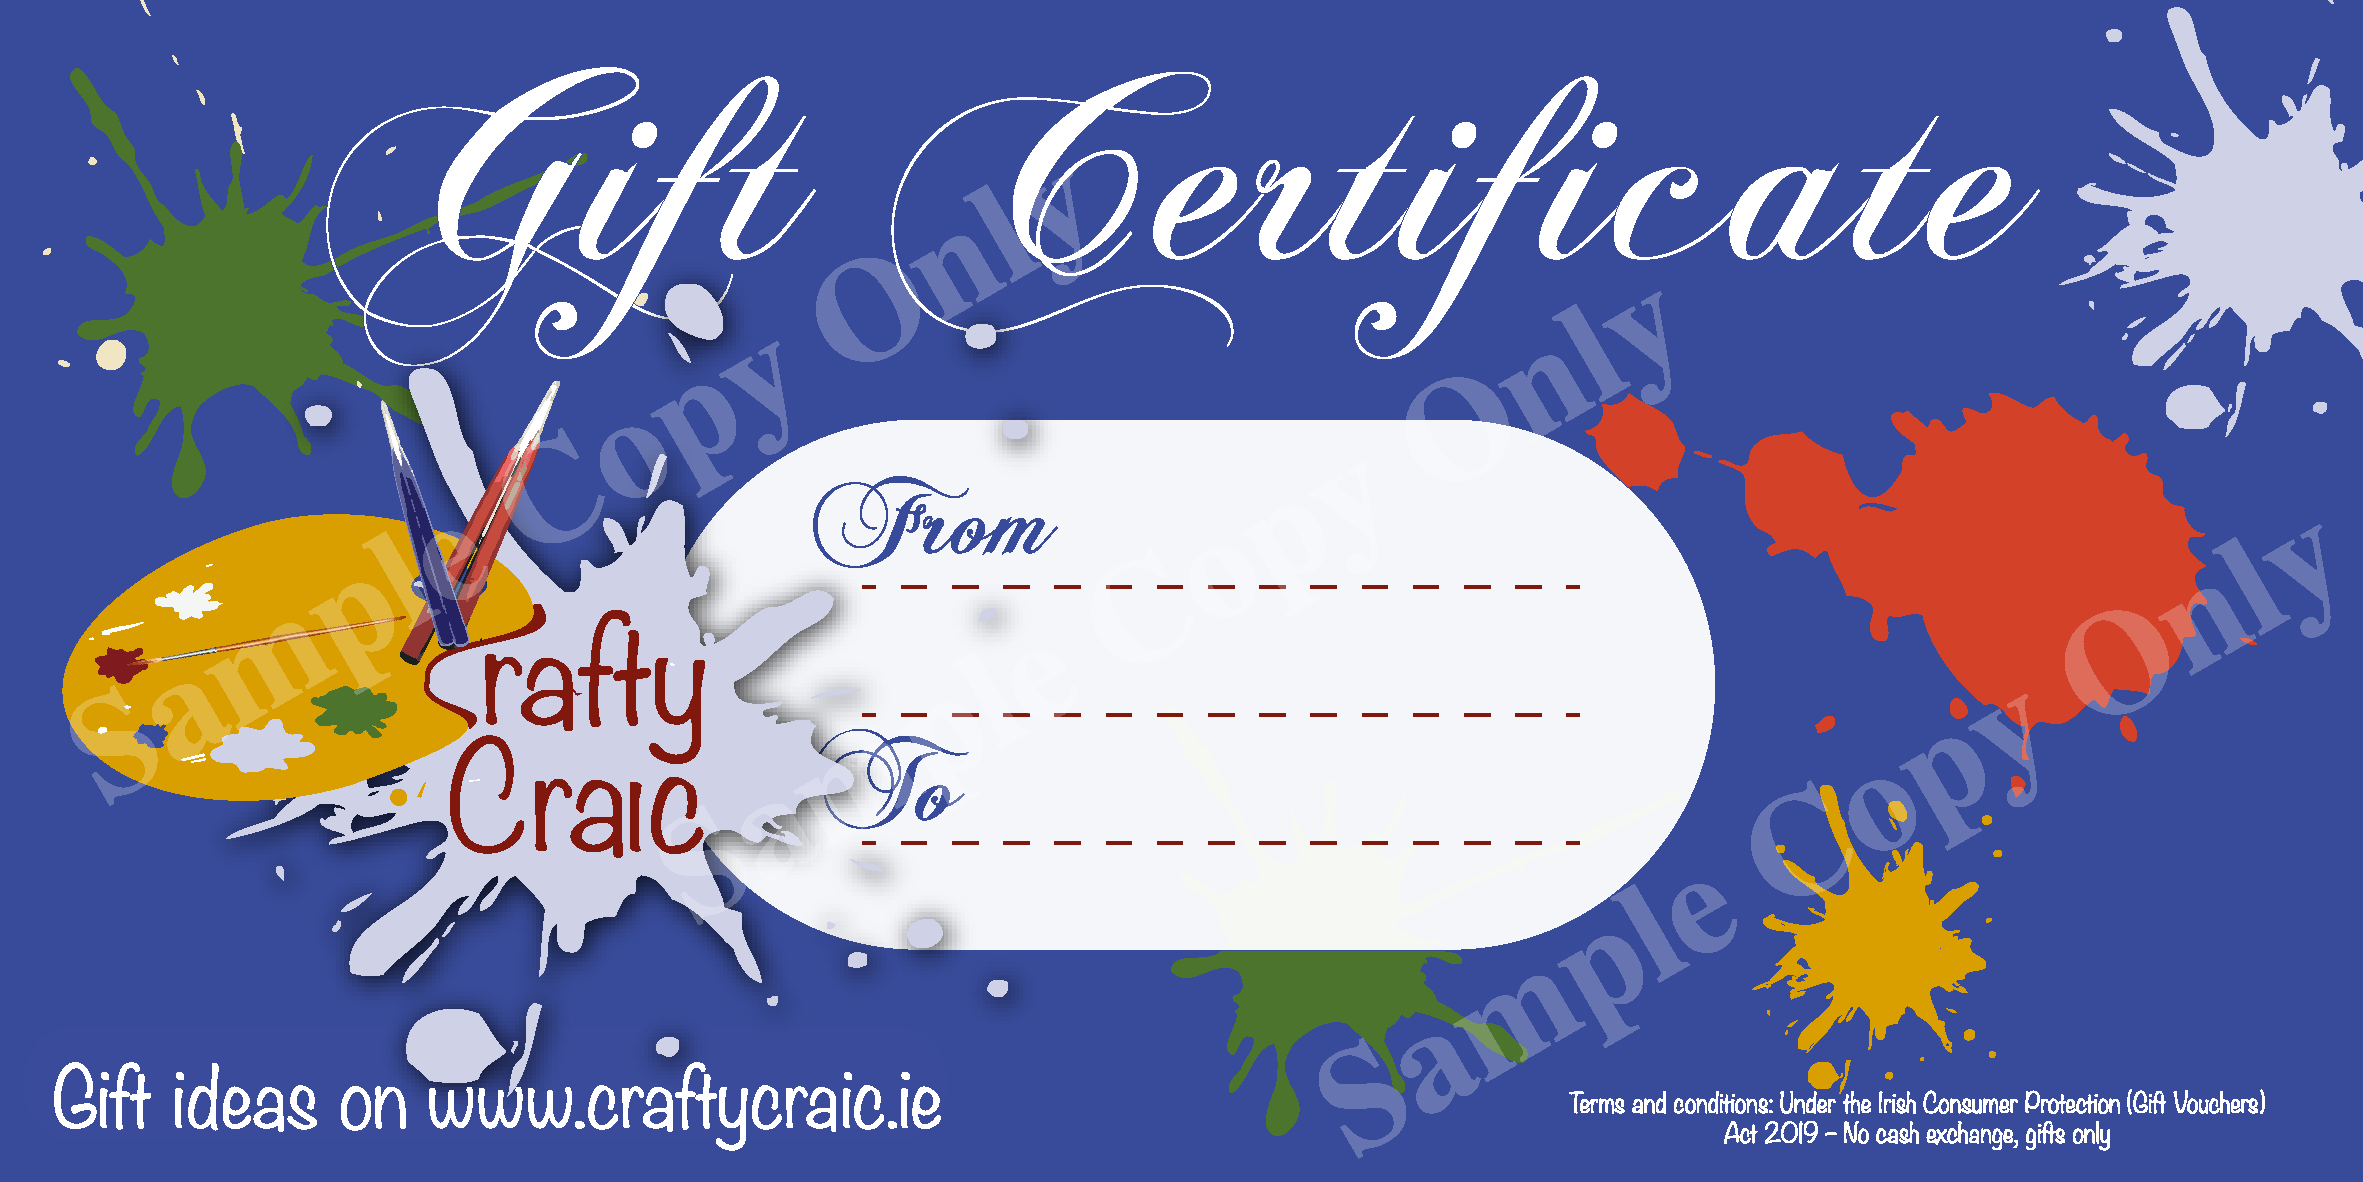 Crafty Craic Gift Voucher